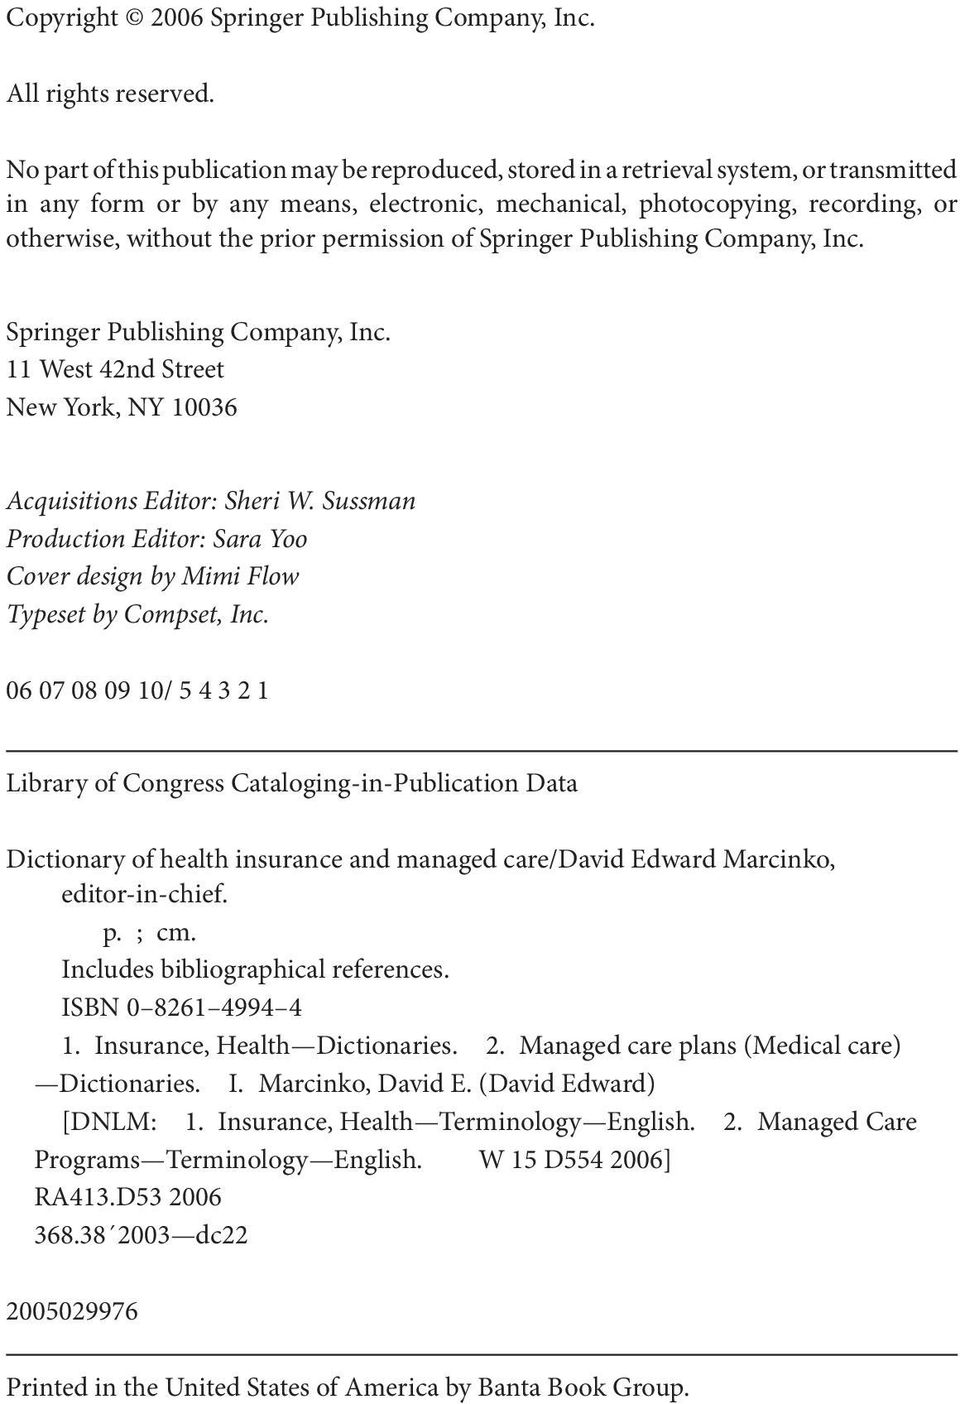 prior permission of Springer Publishing Company, Inc. Springer Publishing Company, Inc. 11 West 42nd Street New York, NY 10036 Acquisitions Editor: Sheri W.